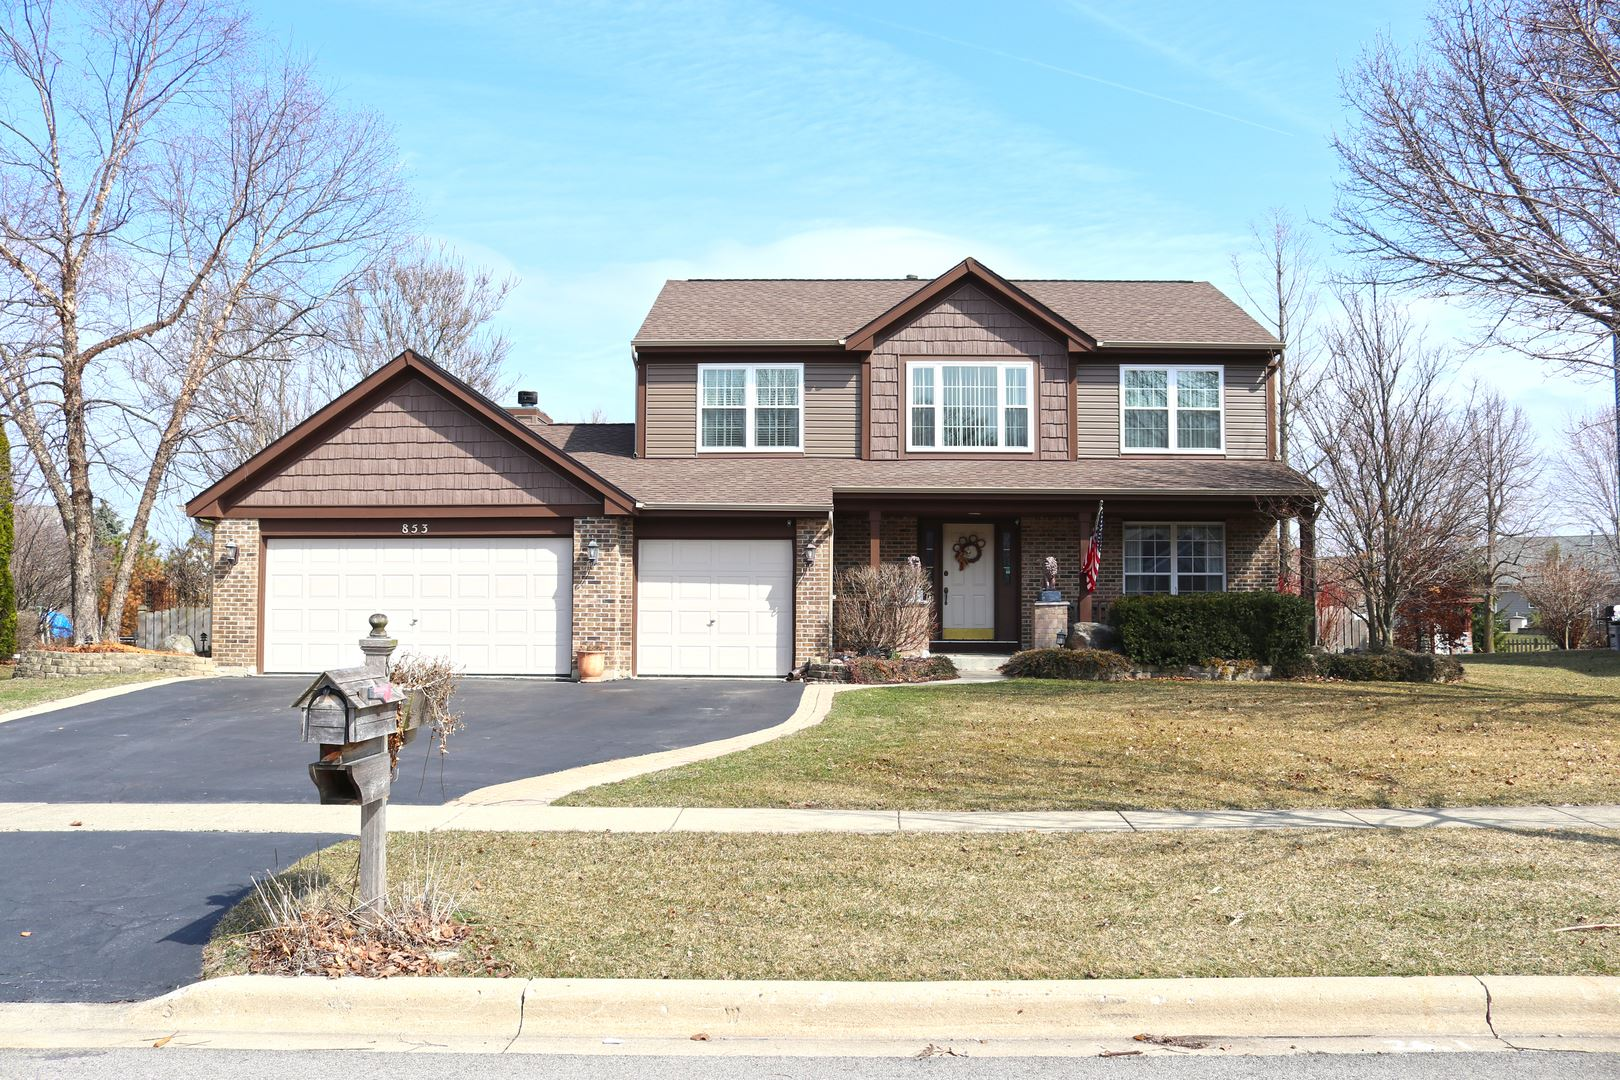 853 Mocking Bird Drive, Antioch, IL 60002 - #: 10672850